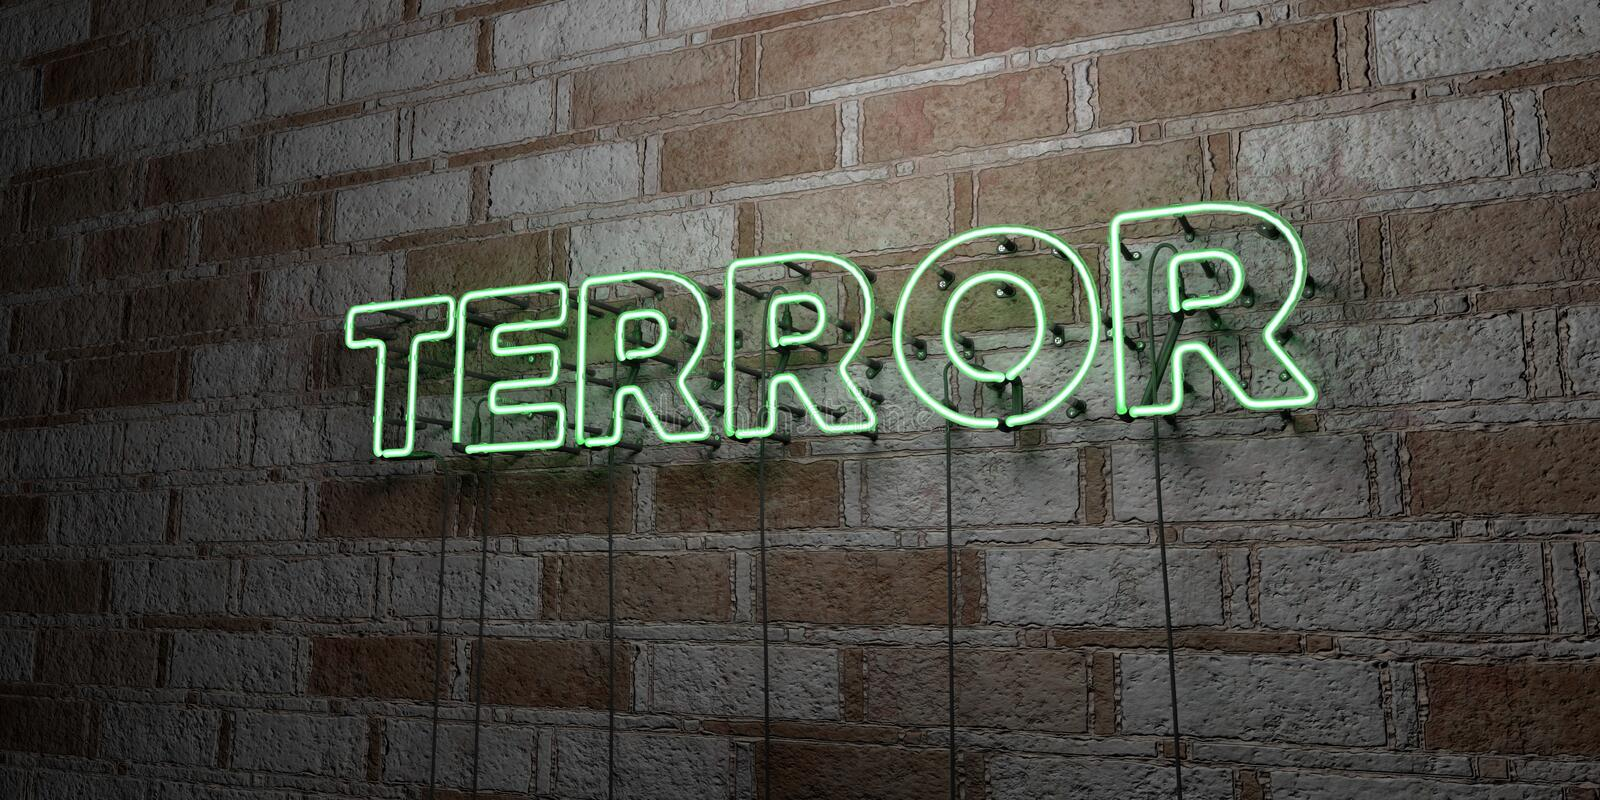 TERROR - Glowing Neon Sign on stonework wall - 3D rendered royalty free stock illustration. Can be used for online banner ads and direct mailers stock illustration